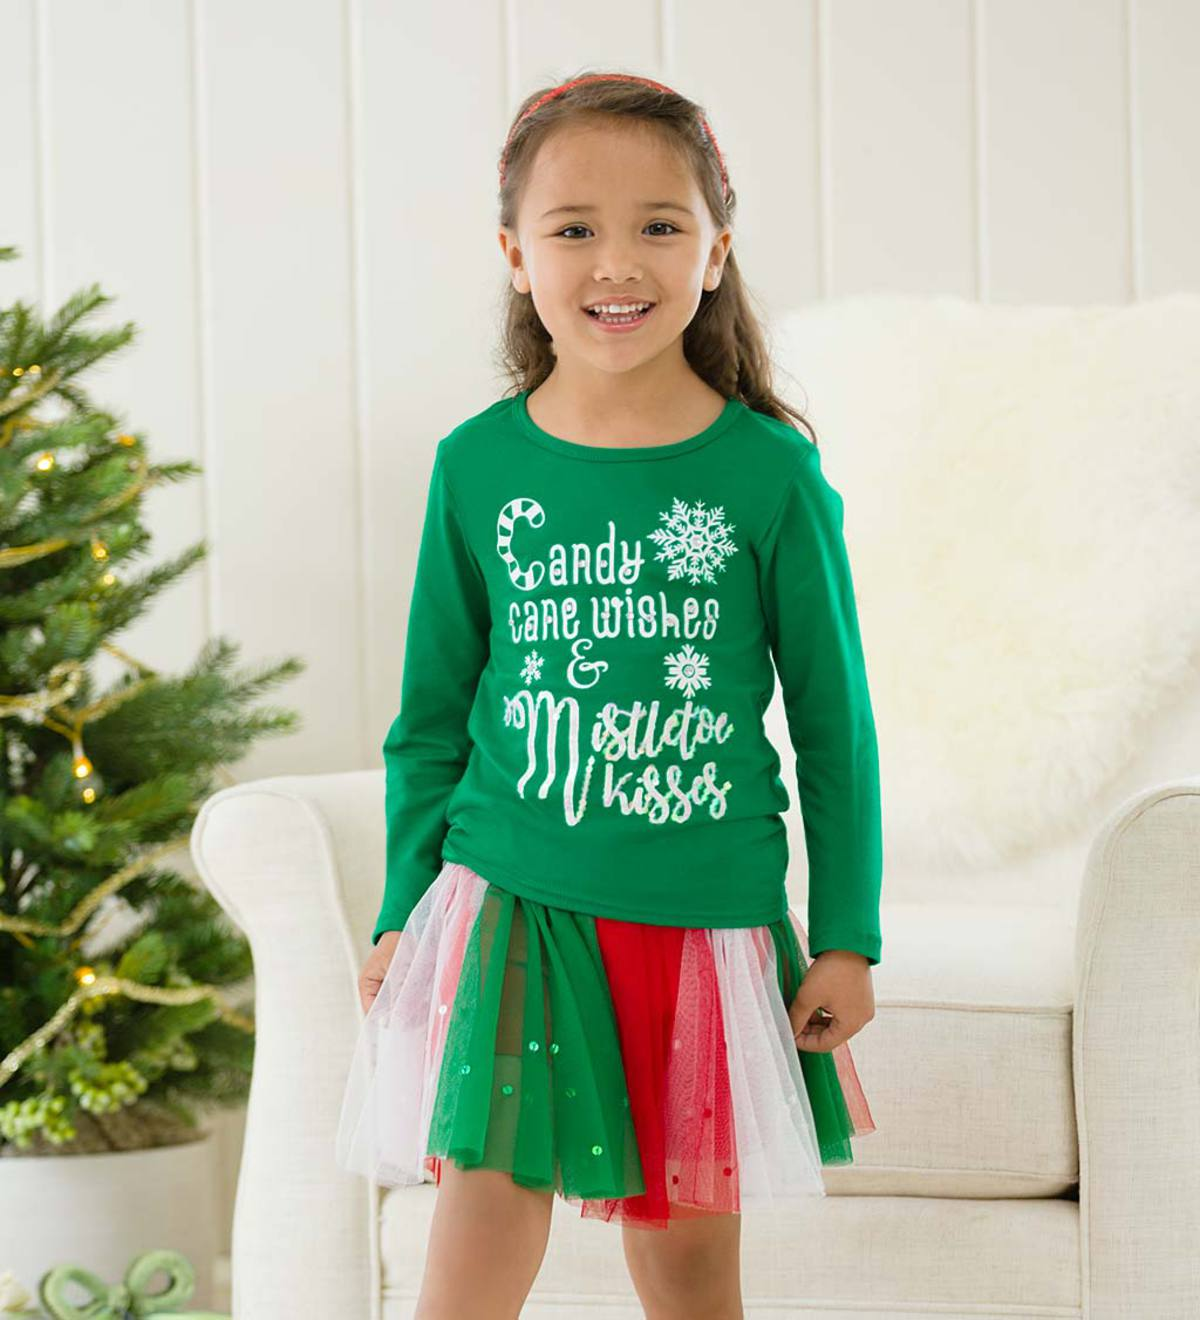 Candy Cane Wishes Tee - Green - 8